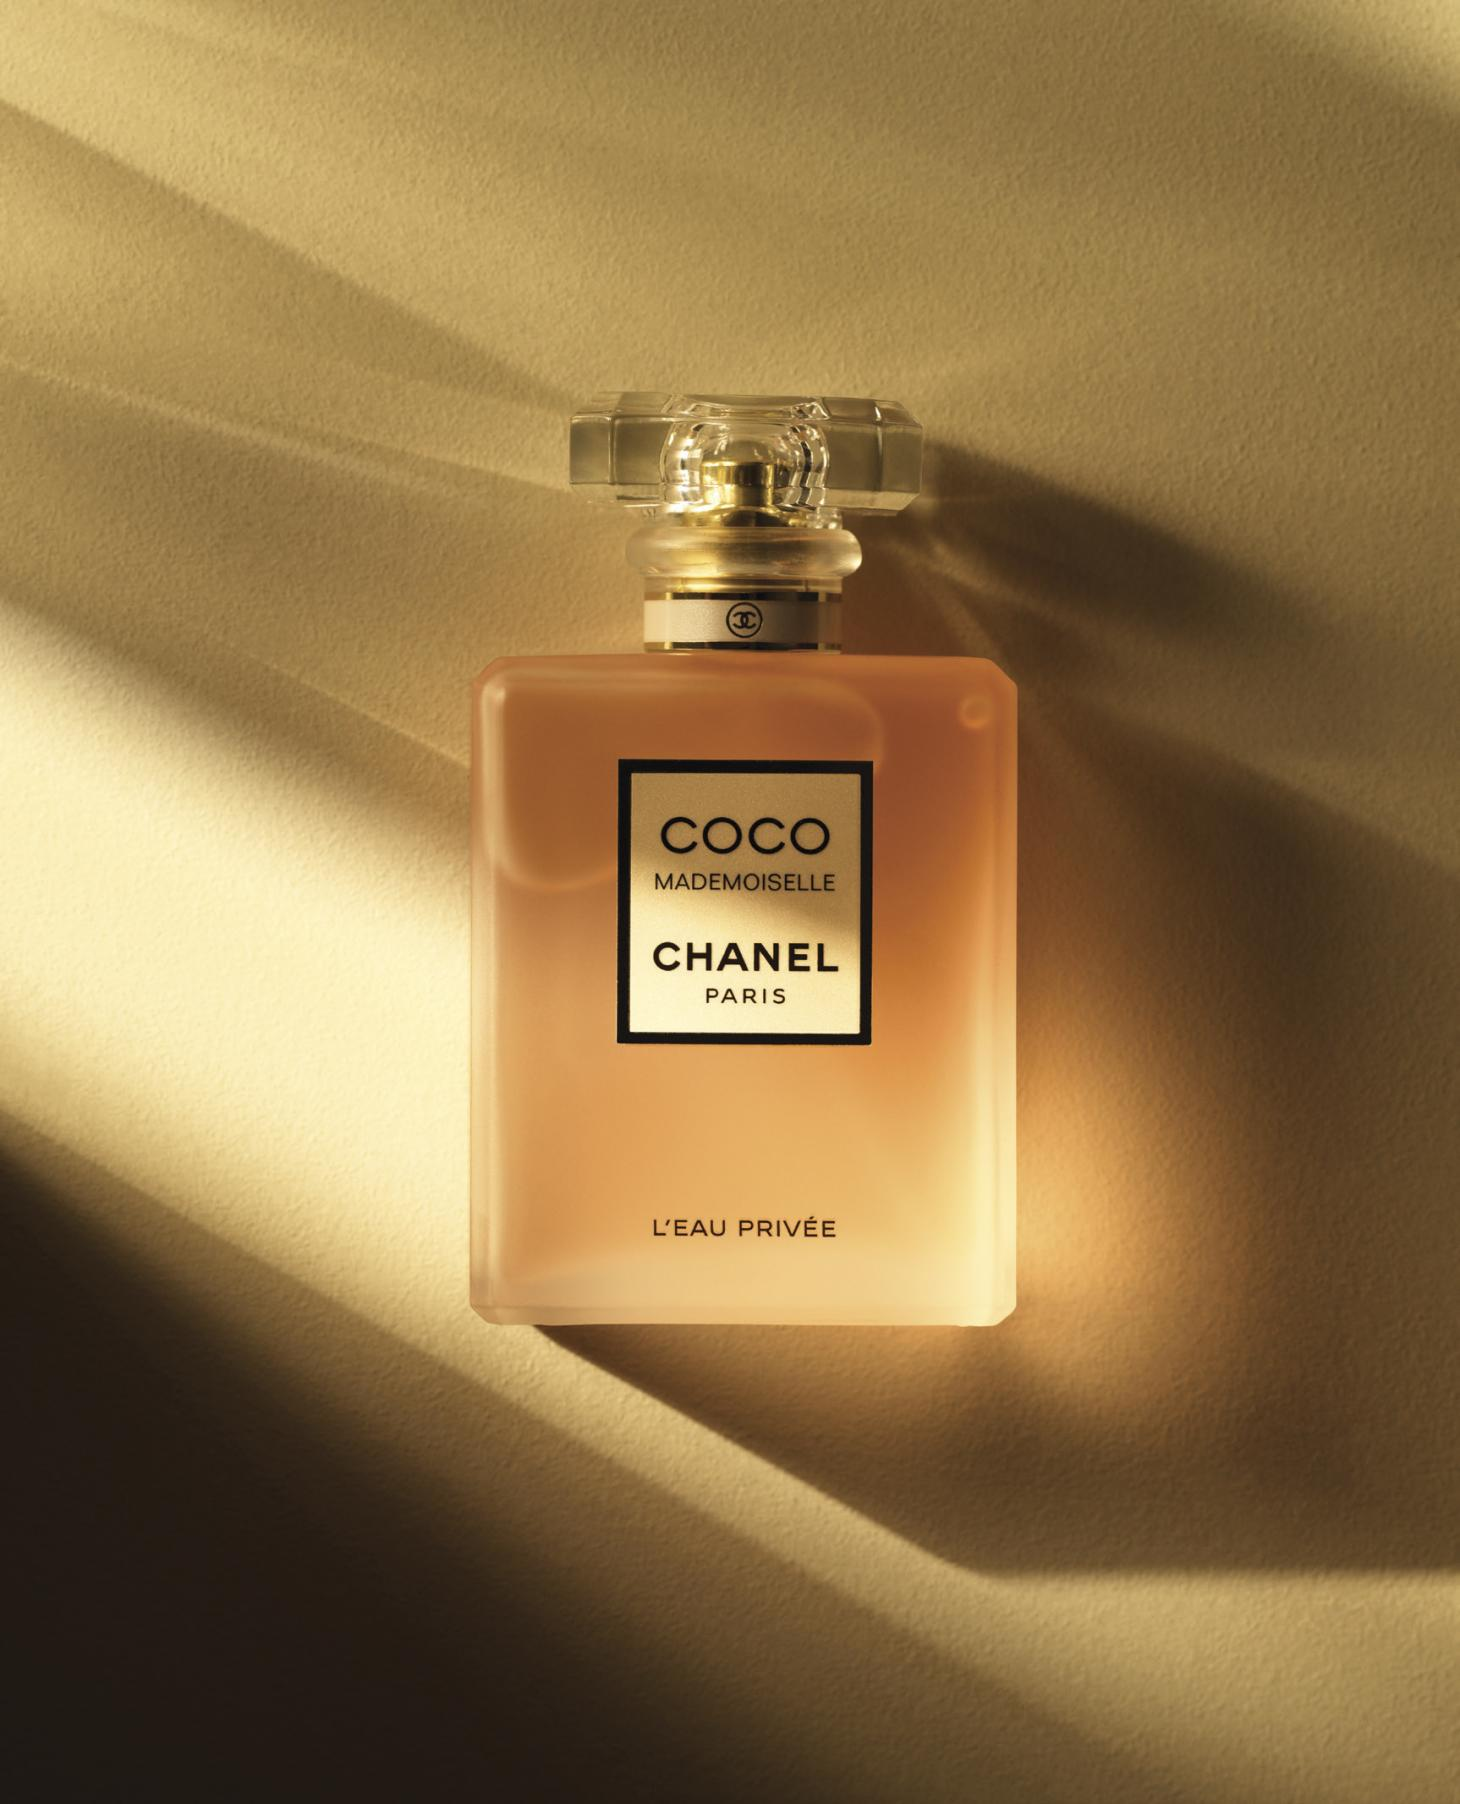 Fragrance bottle from Coco Chanel Madmoiselle beautifully presented on a cream backdrop